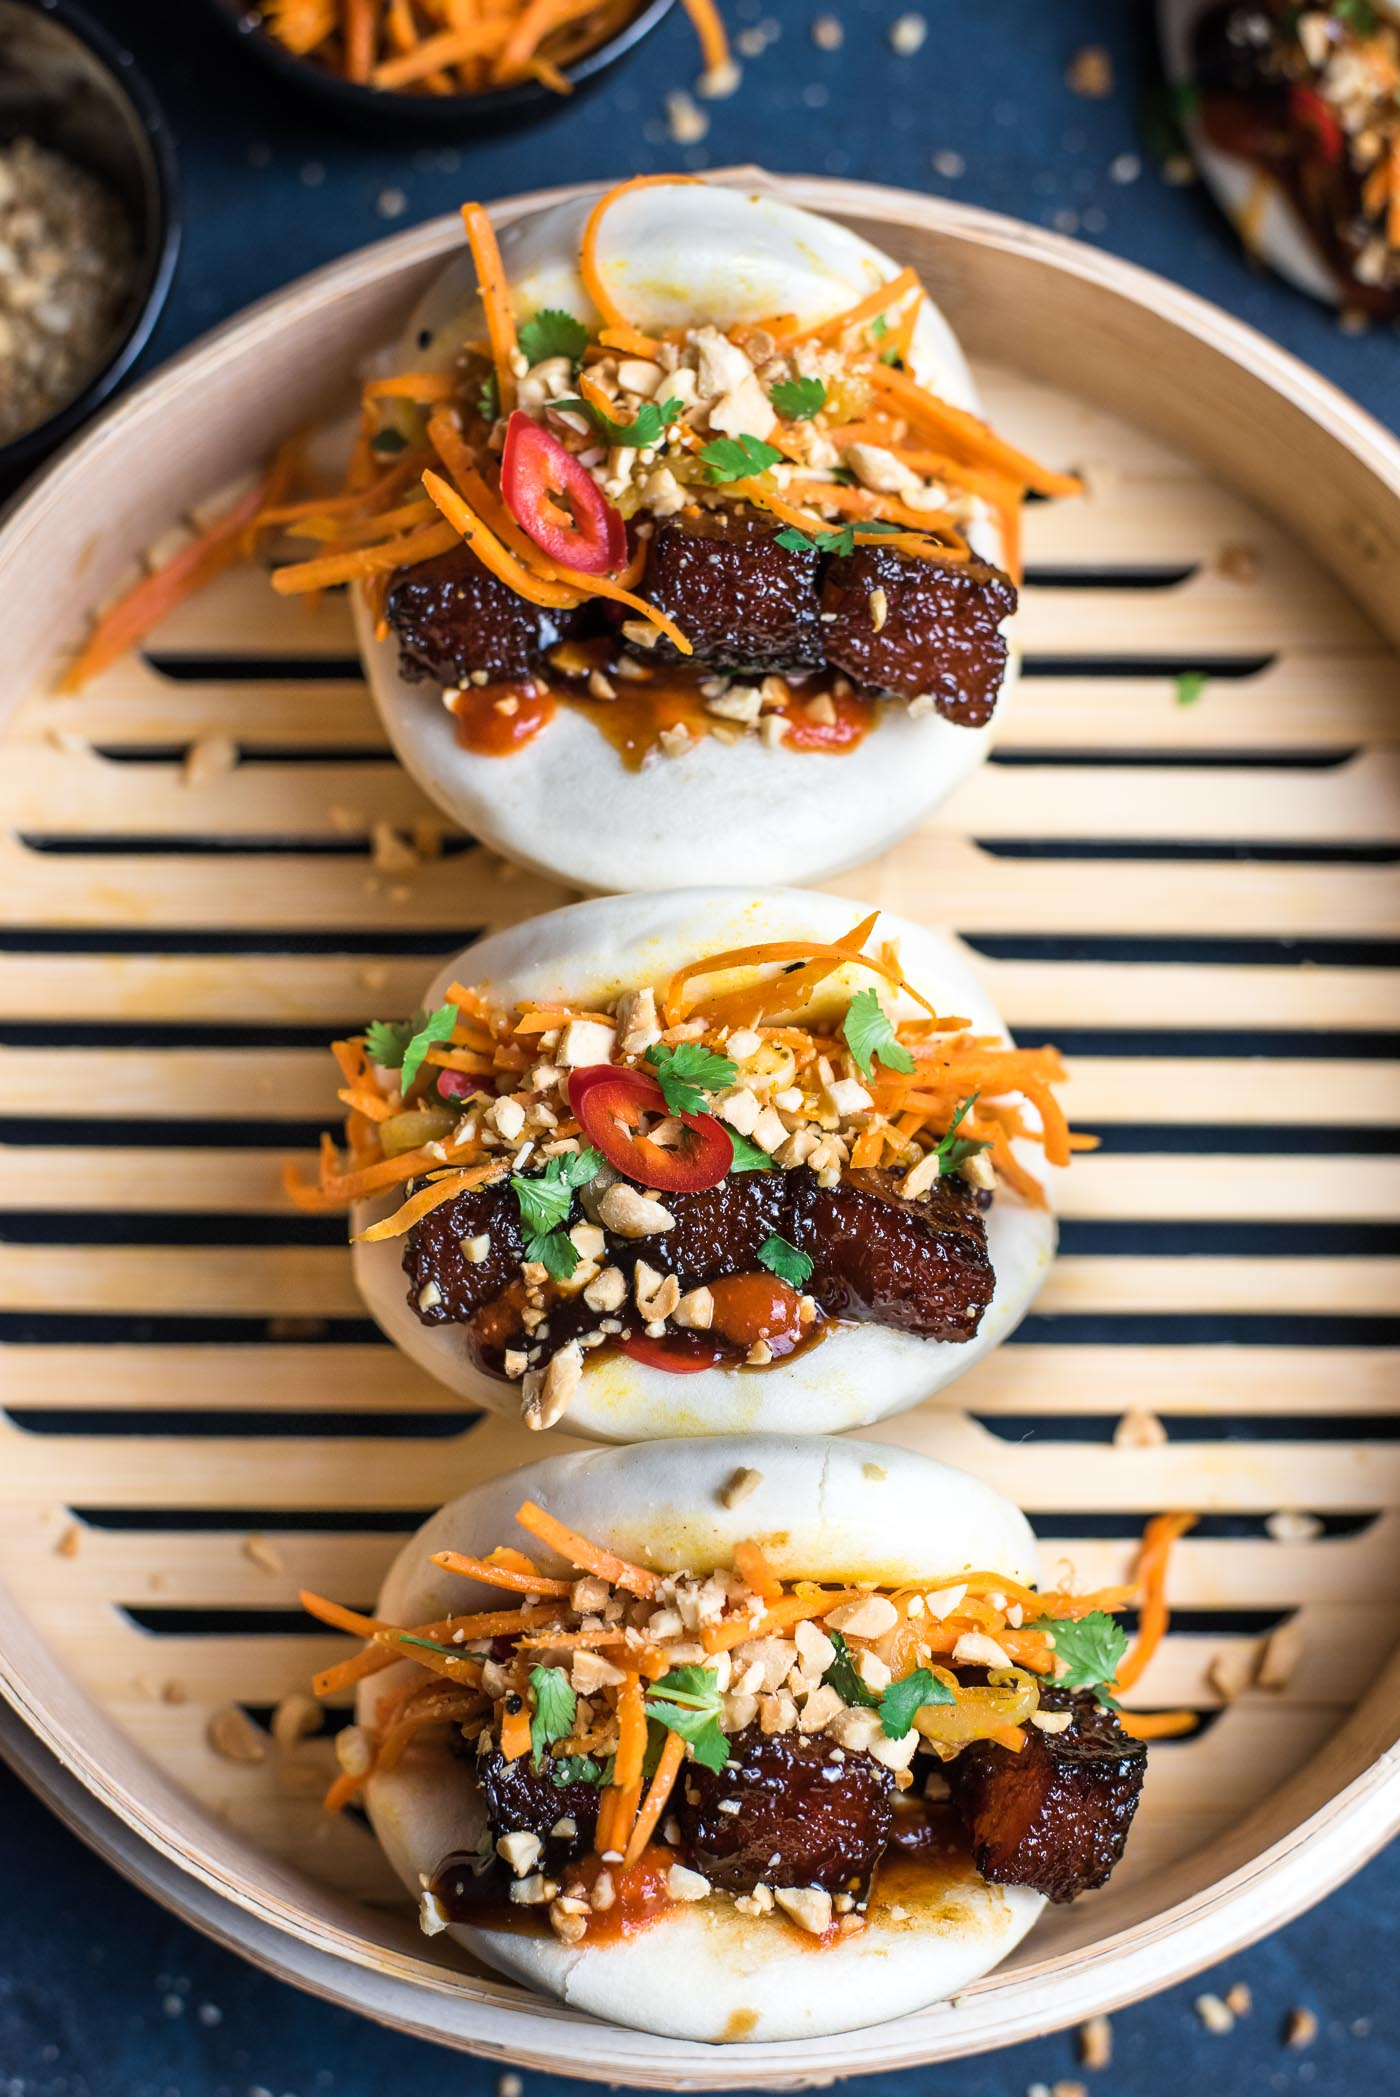 Gua-Bao-with-Glazed-Pork-Belly-1.jpg?resize=1400%2C2097&quality=100&strip=all&ssl=1